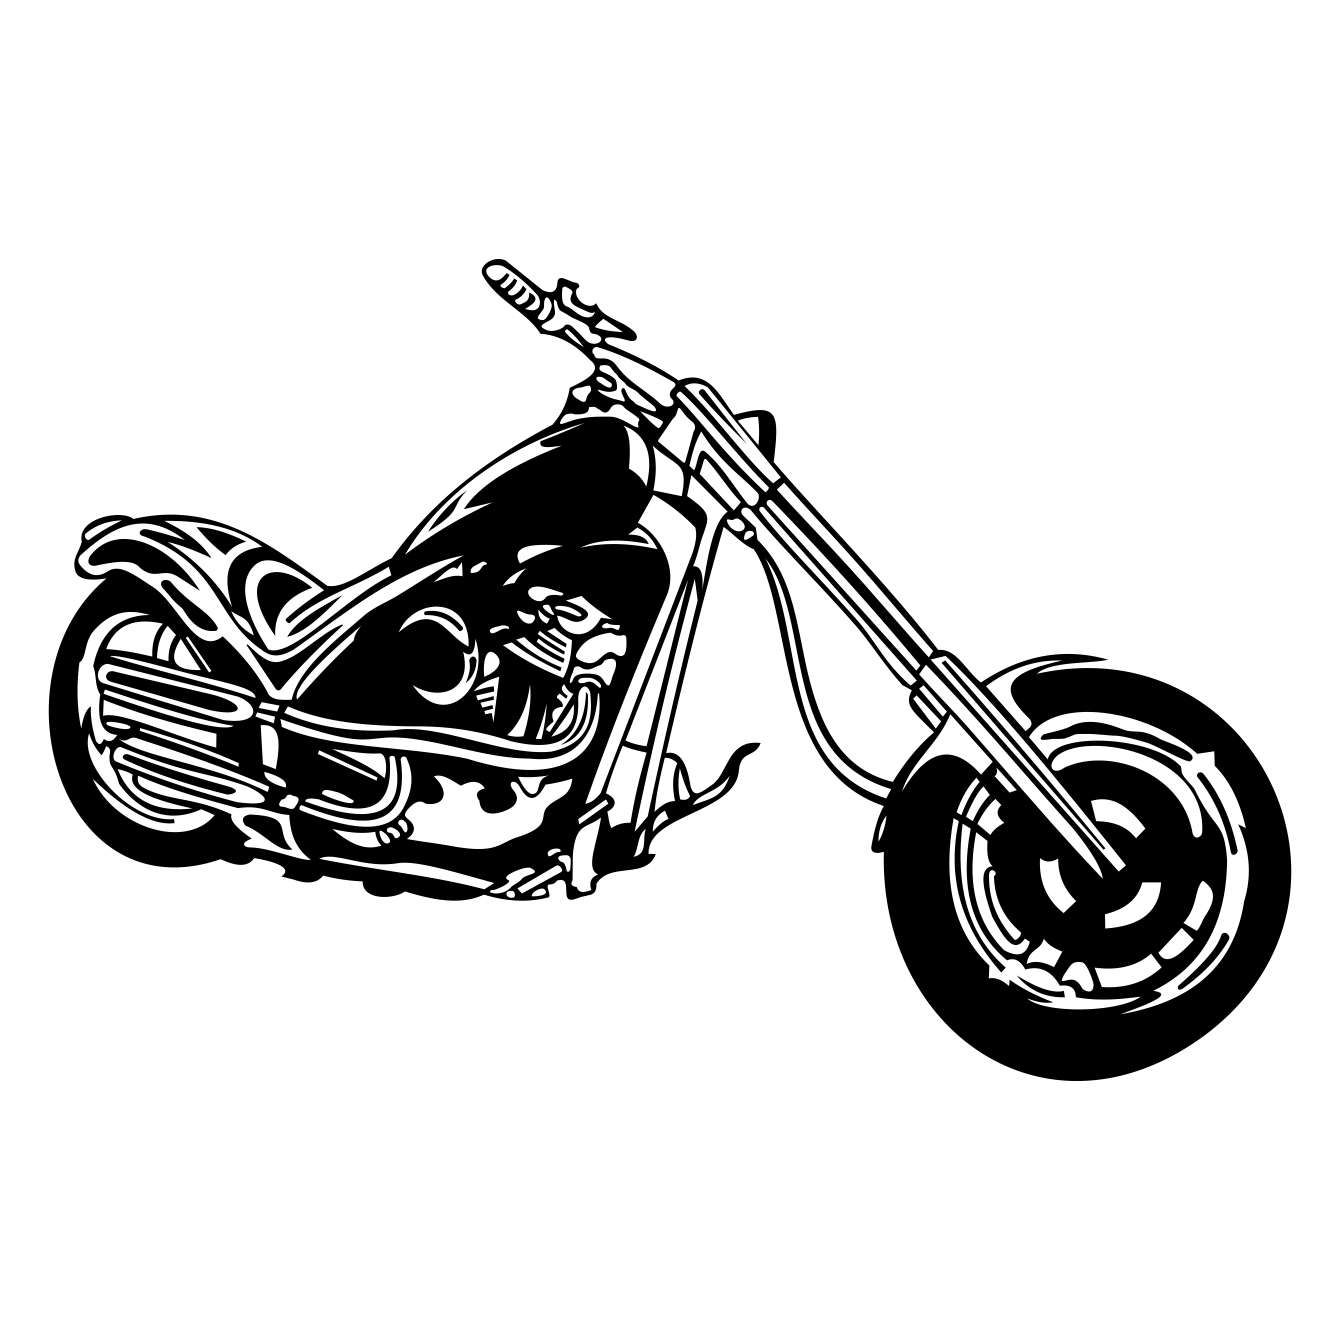 Motorcycle Chopper Graphics Svg Dxf Eps Cdr Ai